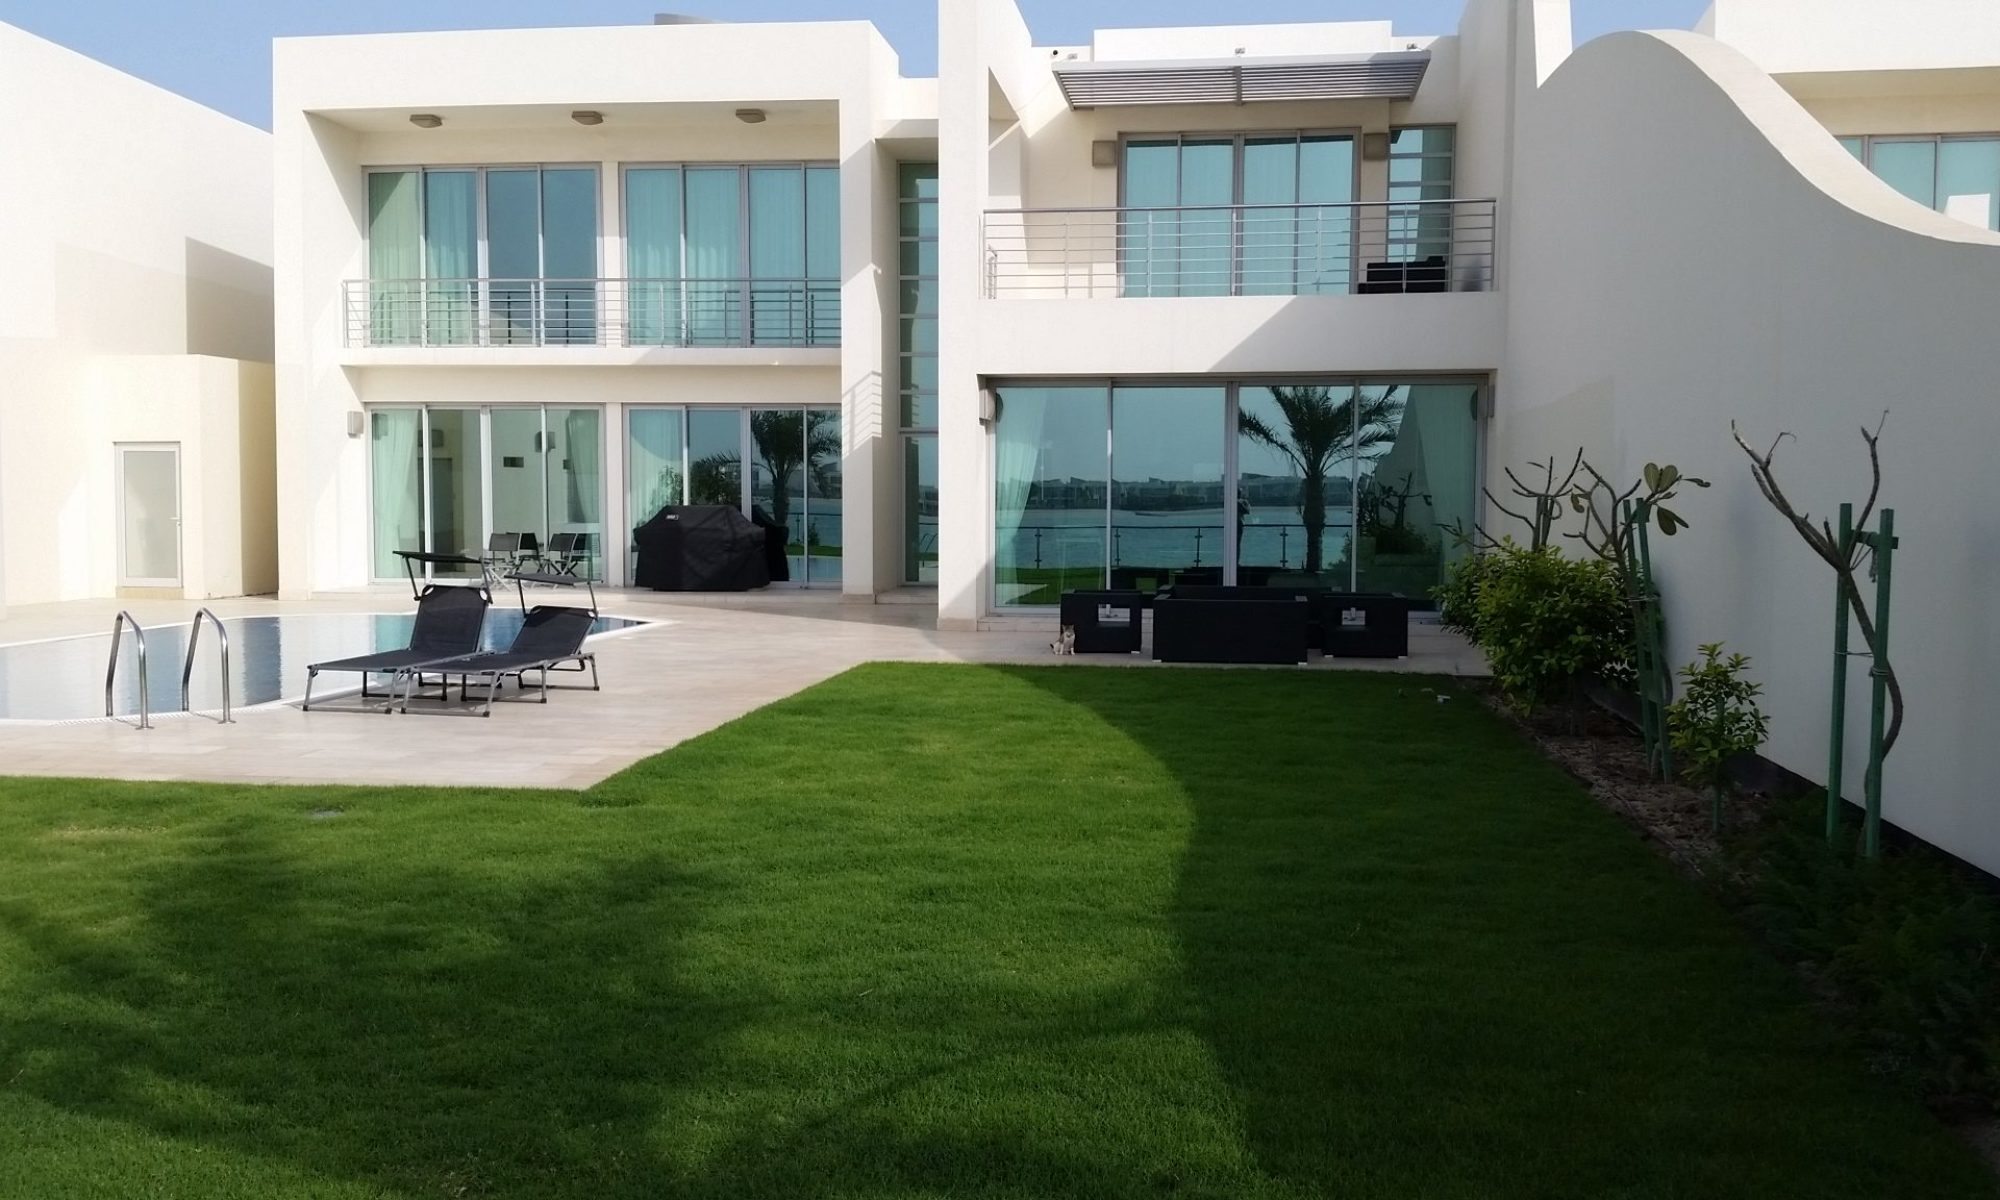 Durrat al Bahrain - our beautiful house is sold! We'll leave soon!